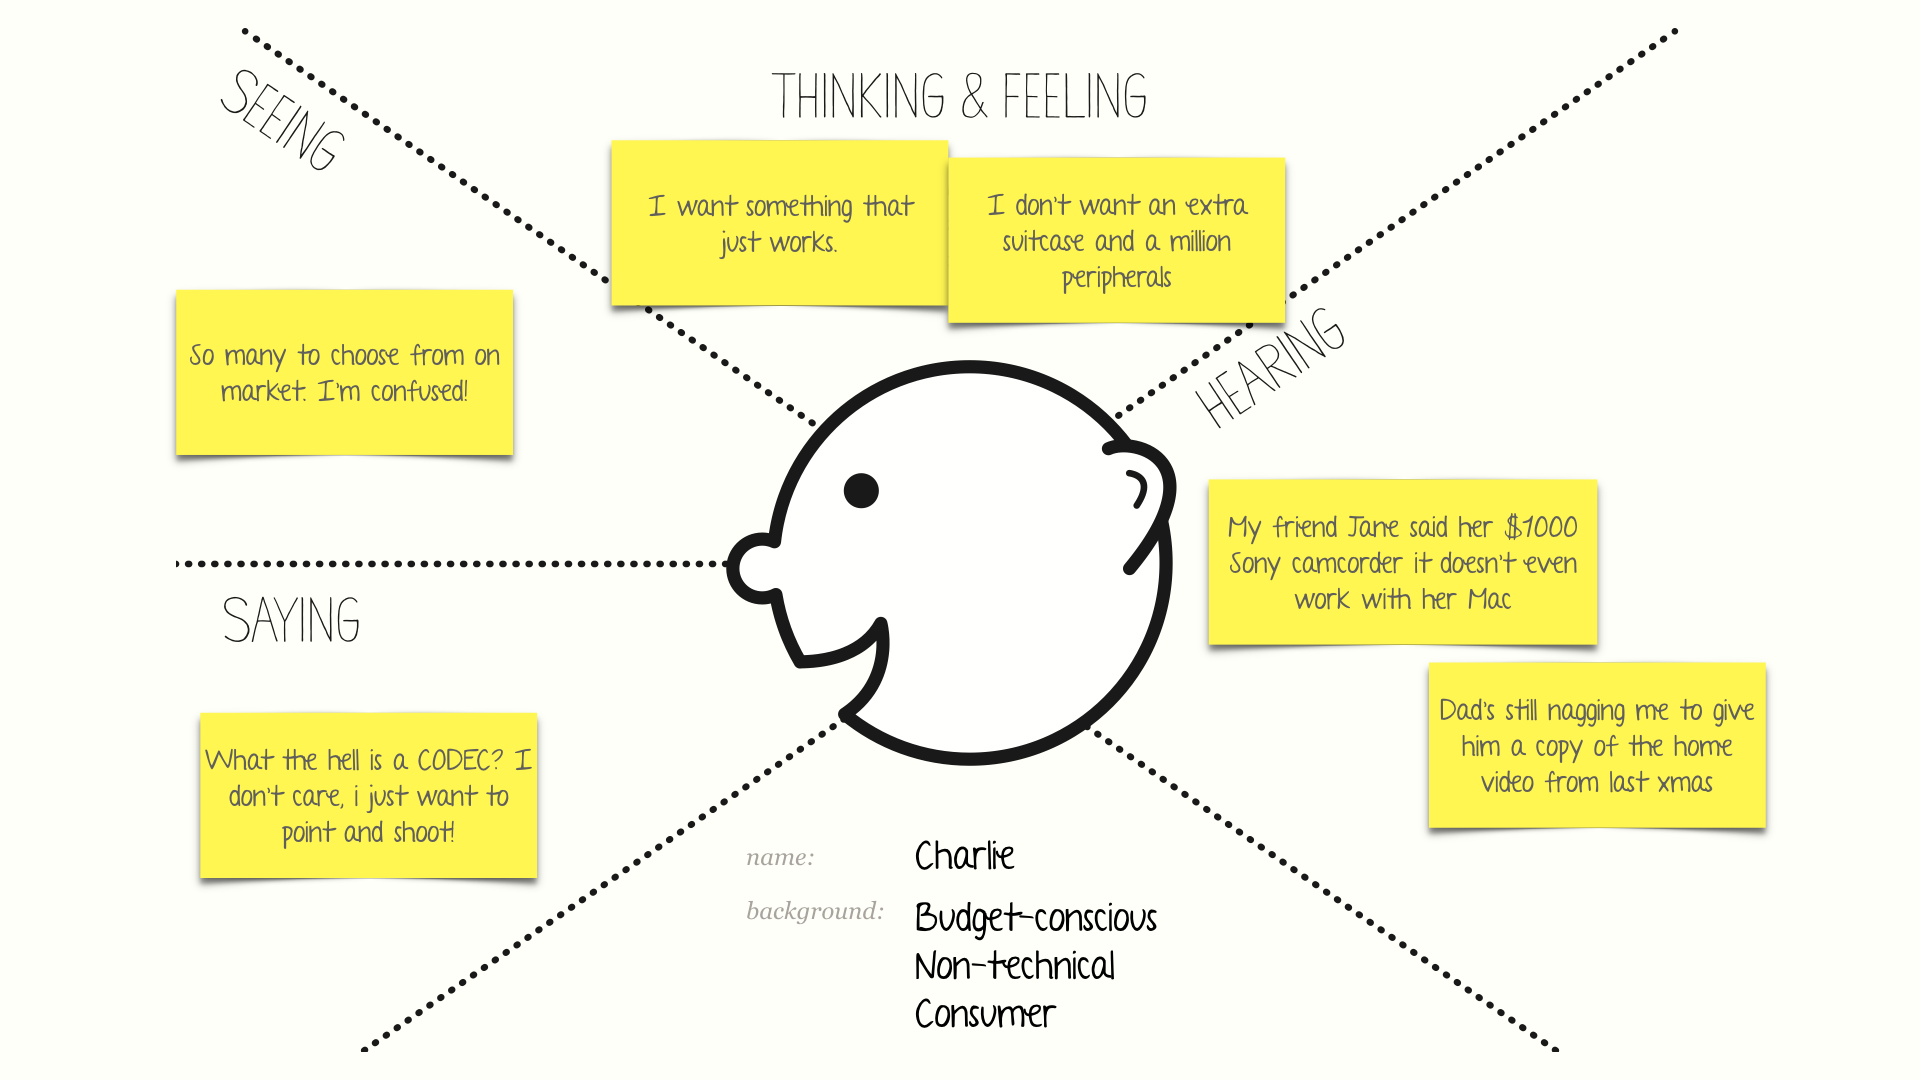 Our Hypothetical Empathy Map Showing Charlie, Our Target User.